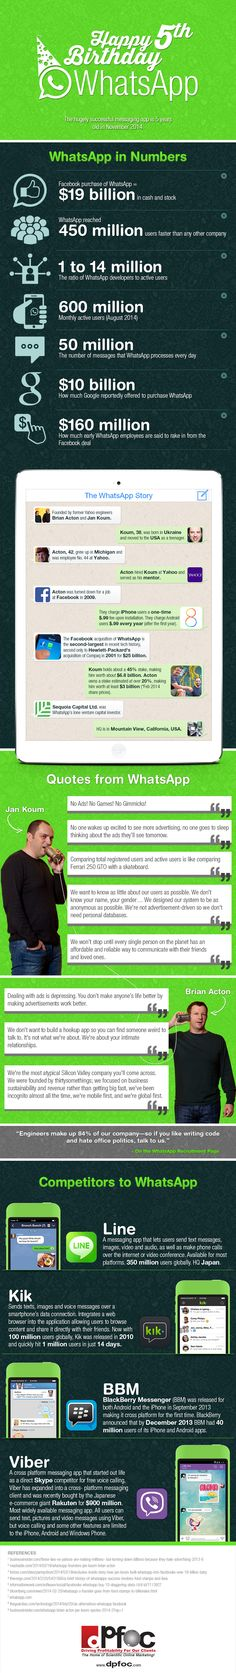 Our favourite chatting app WhatsApp is celebrating its 10th birthday.  Source: http://www.dpfoc.com/usa/